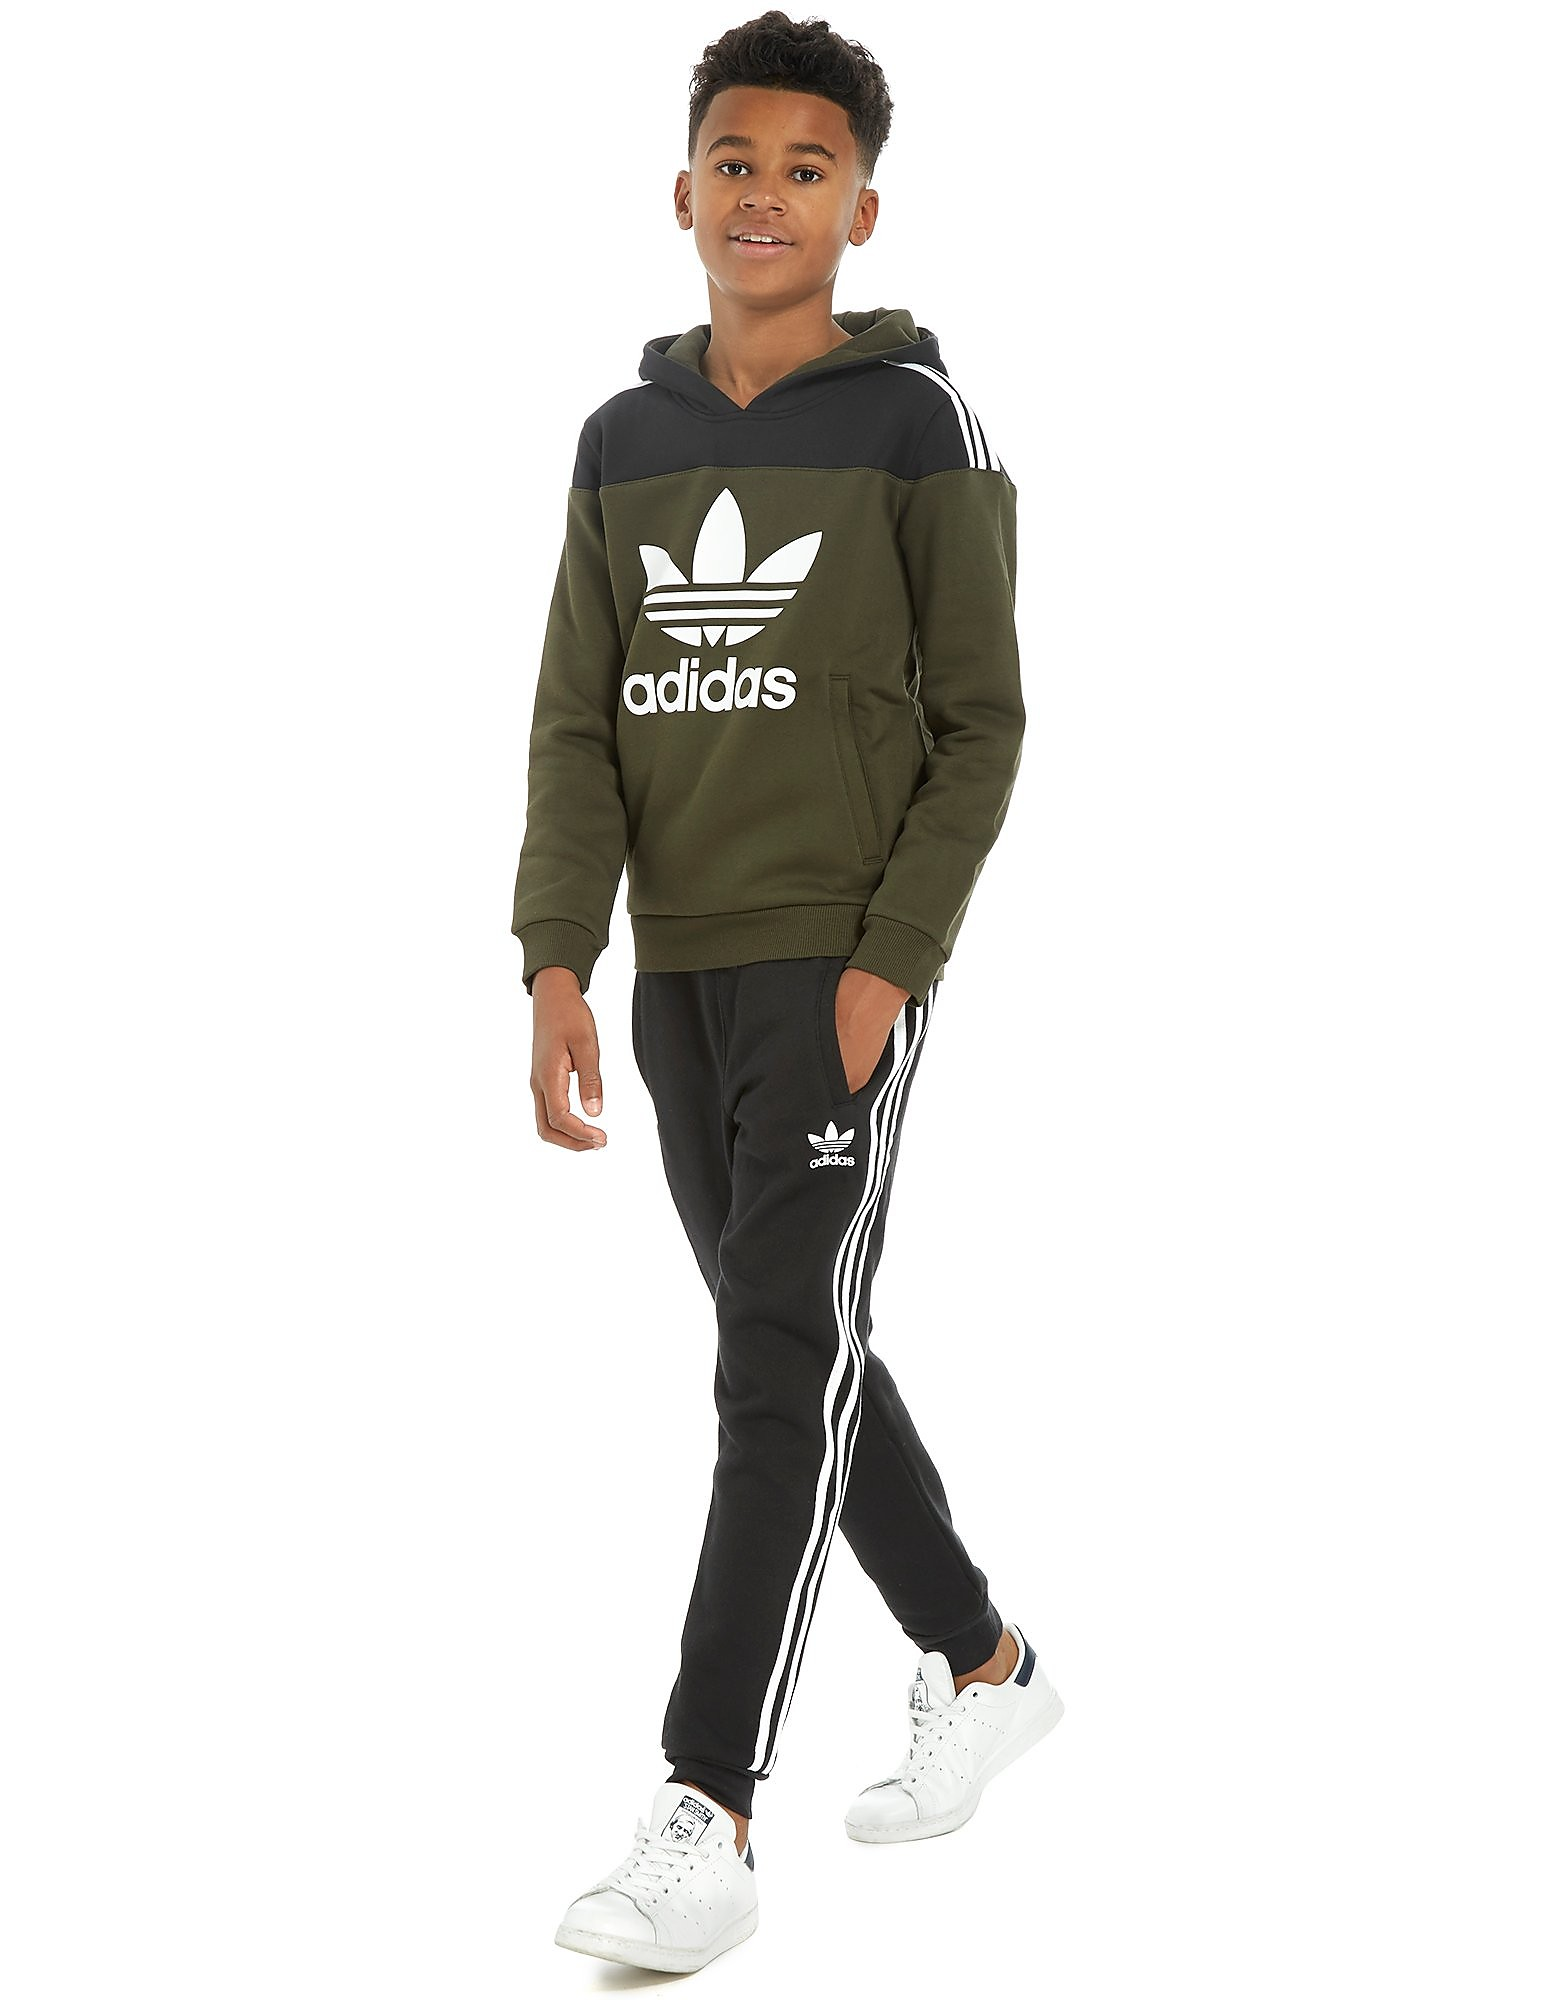 adidas Originals Trefoil Hoody Junior